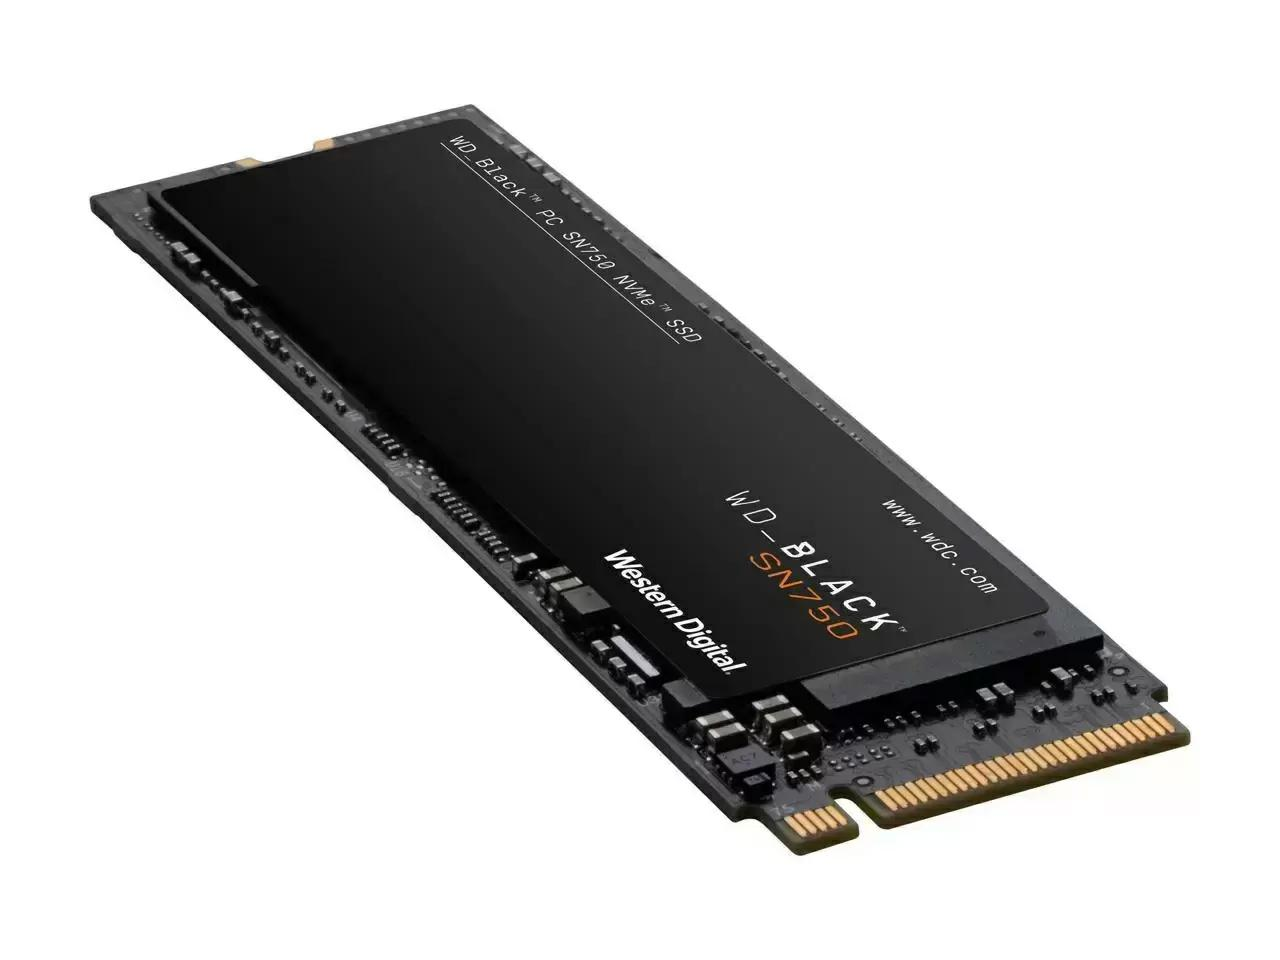 500GB WD Black SN750 NVMe PCIe SSD Solid State Drive for $69.99 Shipped